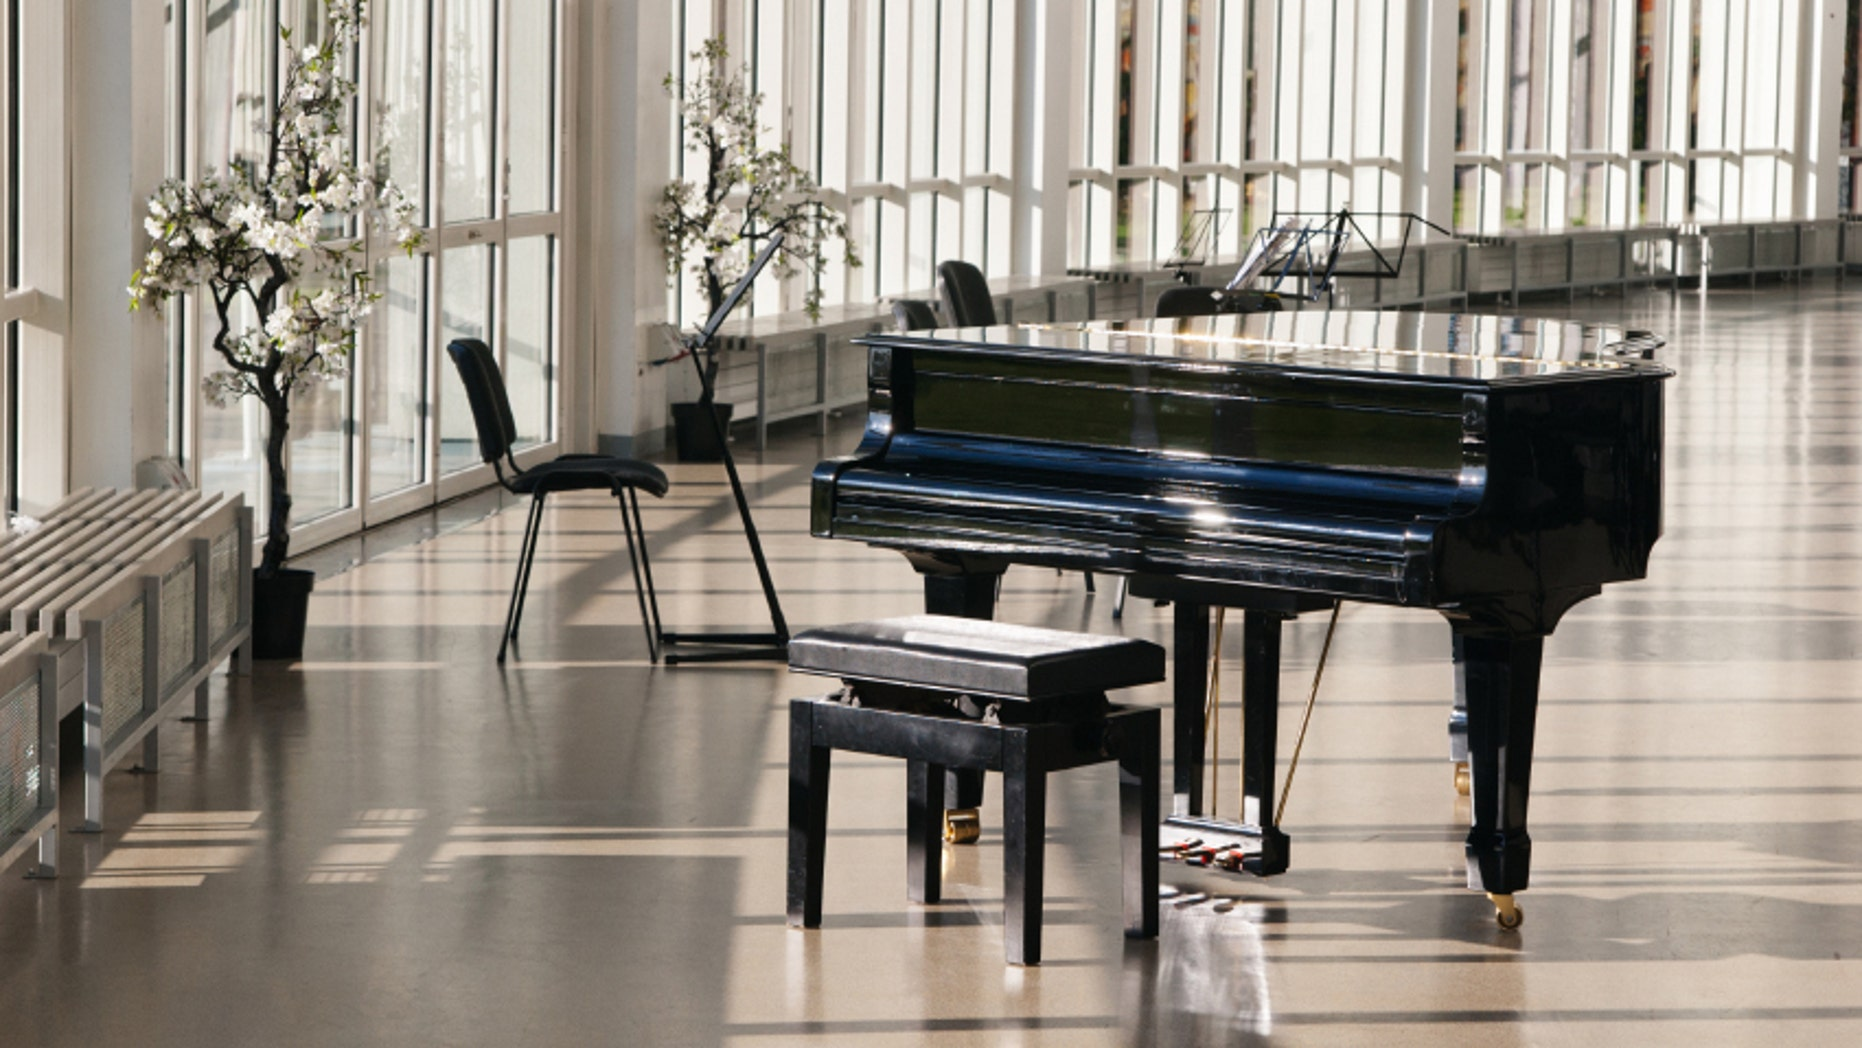 People have stolen large, expensive pianos from hotels.